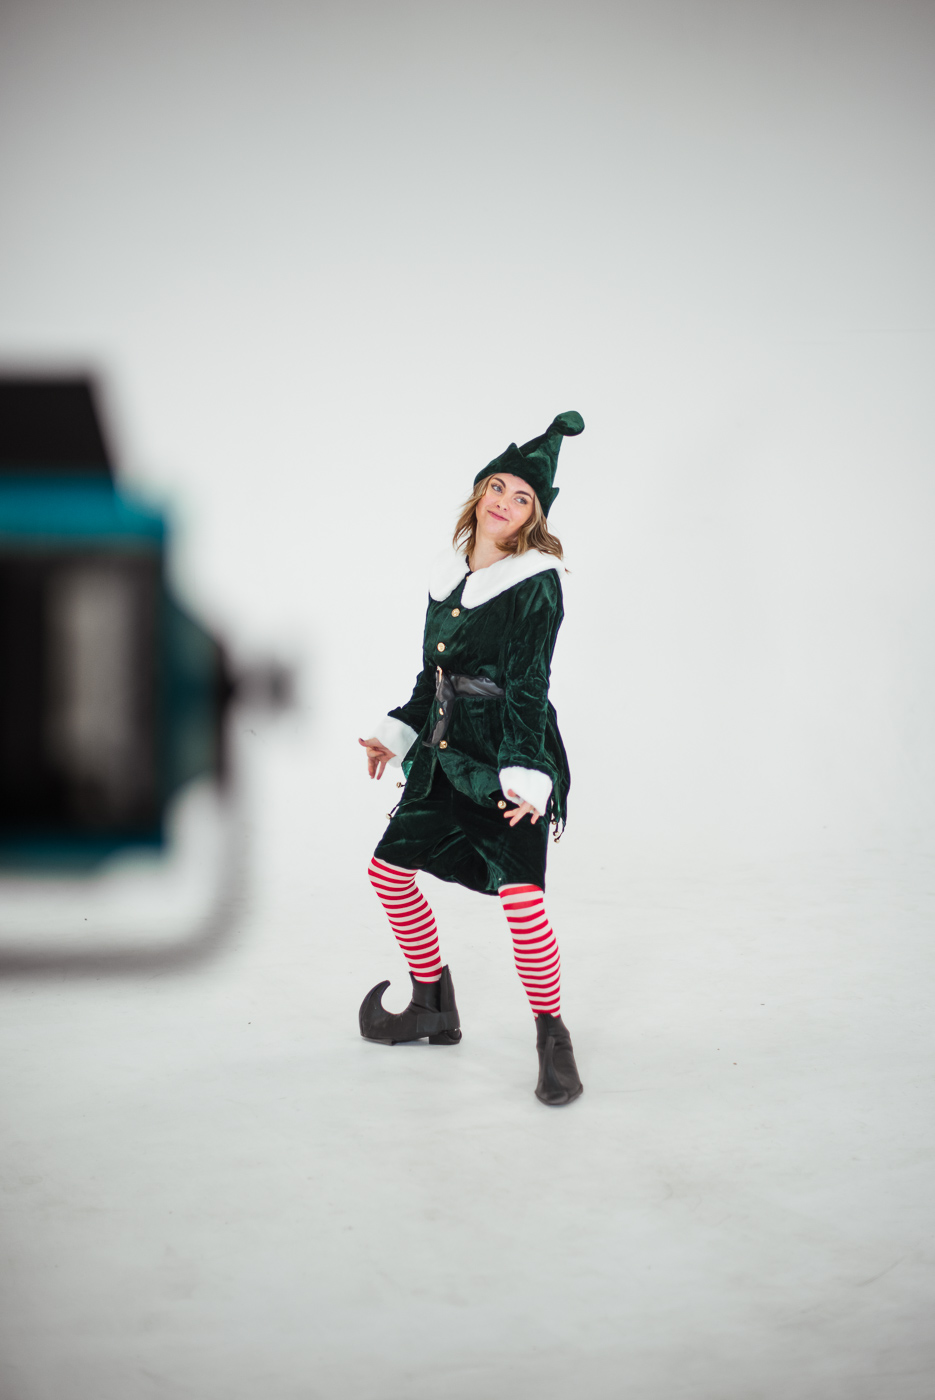 PHOCO Christmas Card The Articulate Photo Studio Cyclorama Infinity Wall Colorado Fort Collins Photographer Elf Yourself BTS-11.jpg